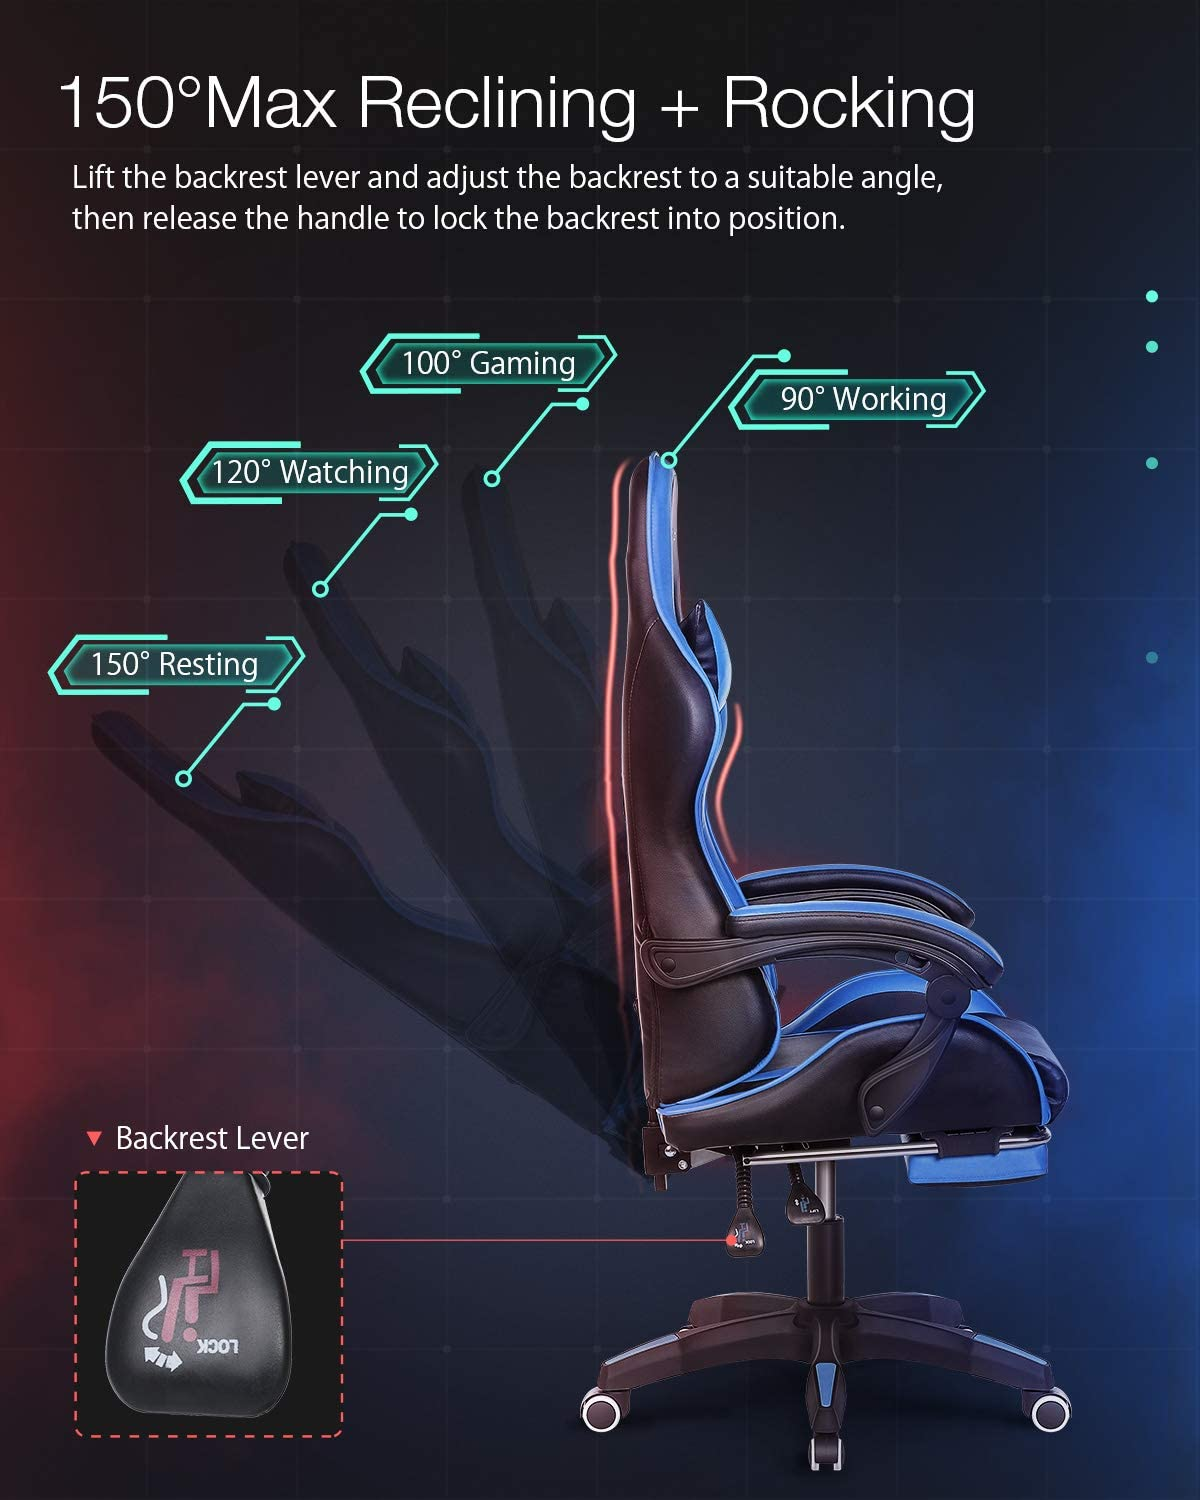 Gaming Chair BlitzWolf Office Chair Ergonomic Computer Chair PC Gaming Chair with Footrest 150/°Reclining Detachable Pillows Armrest Home Office Blue